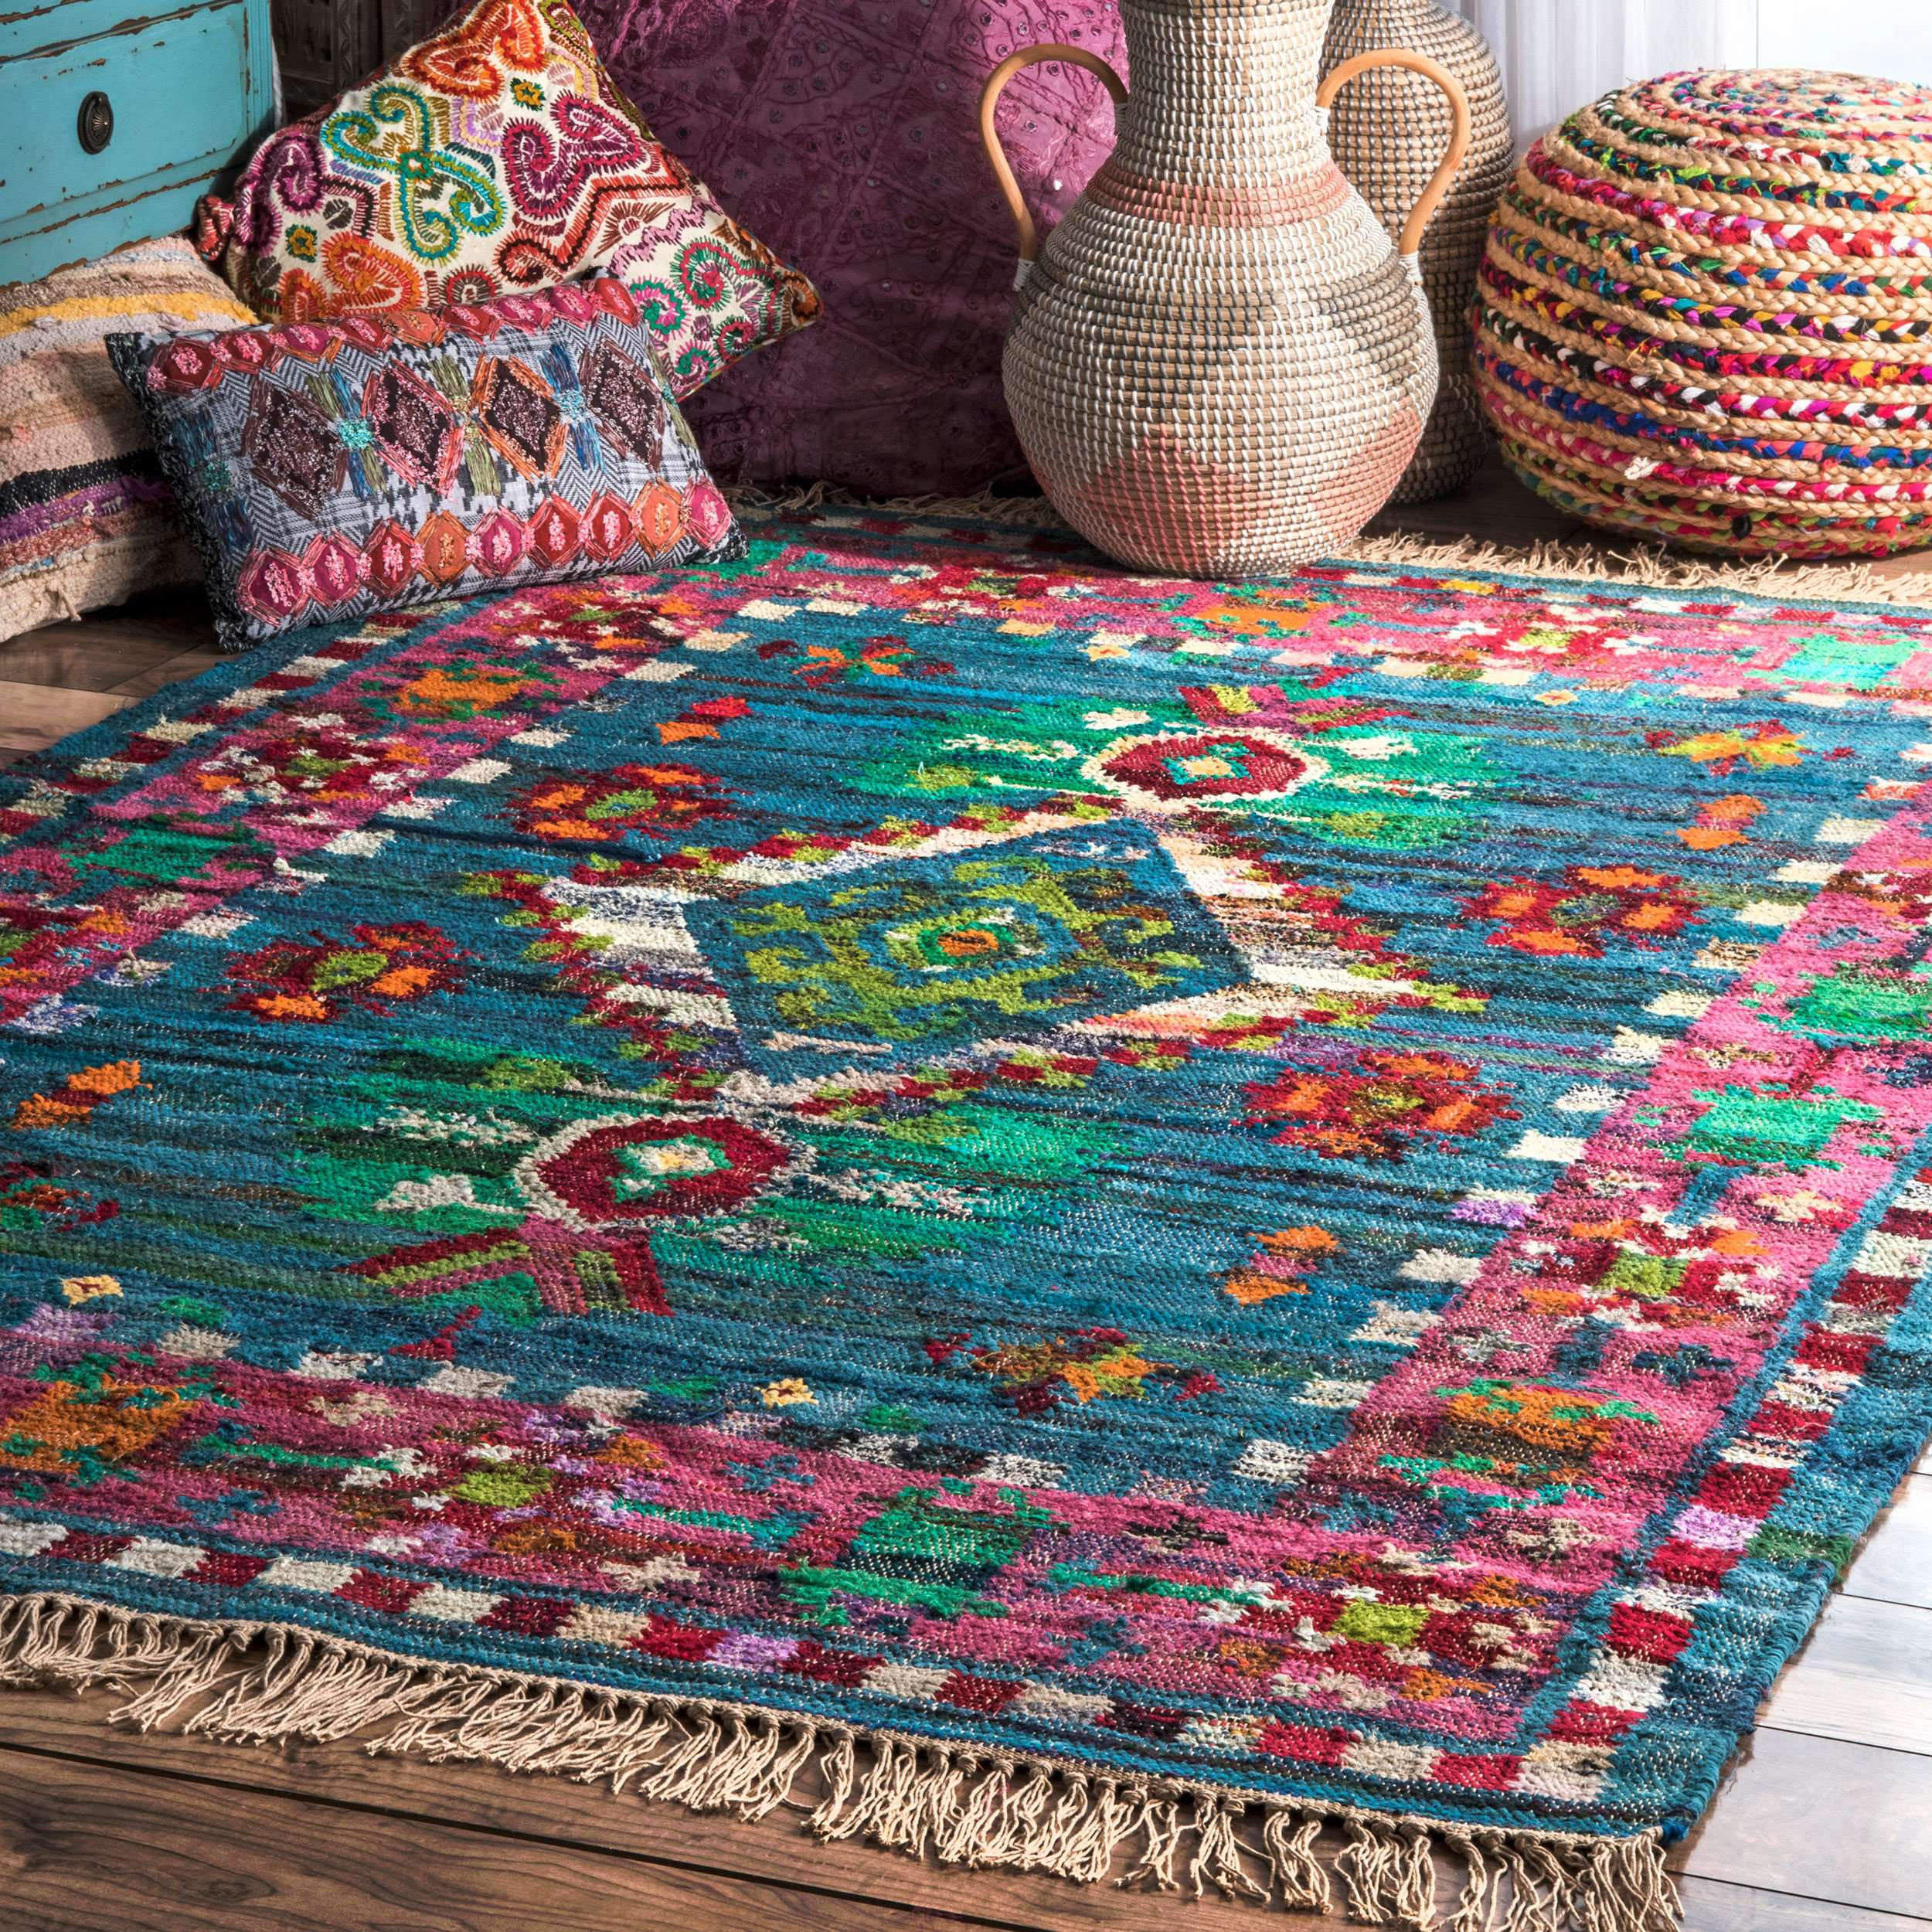 safavieh x vintage modern collection luxury of bohemian ideas distressed abstract multicolored rugs monaco area inspirational rug